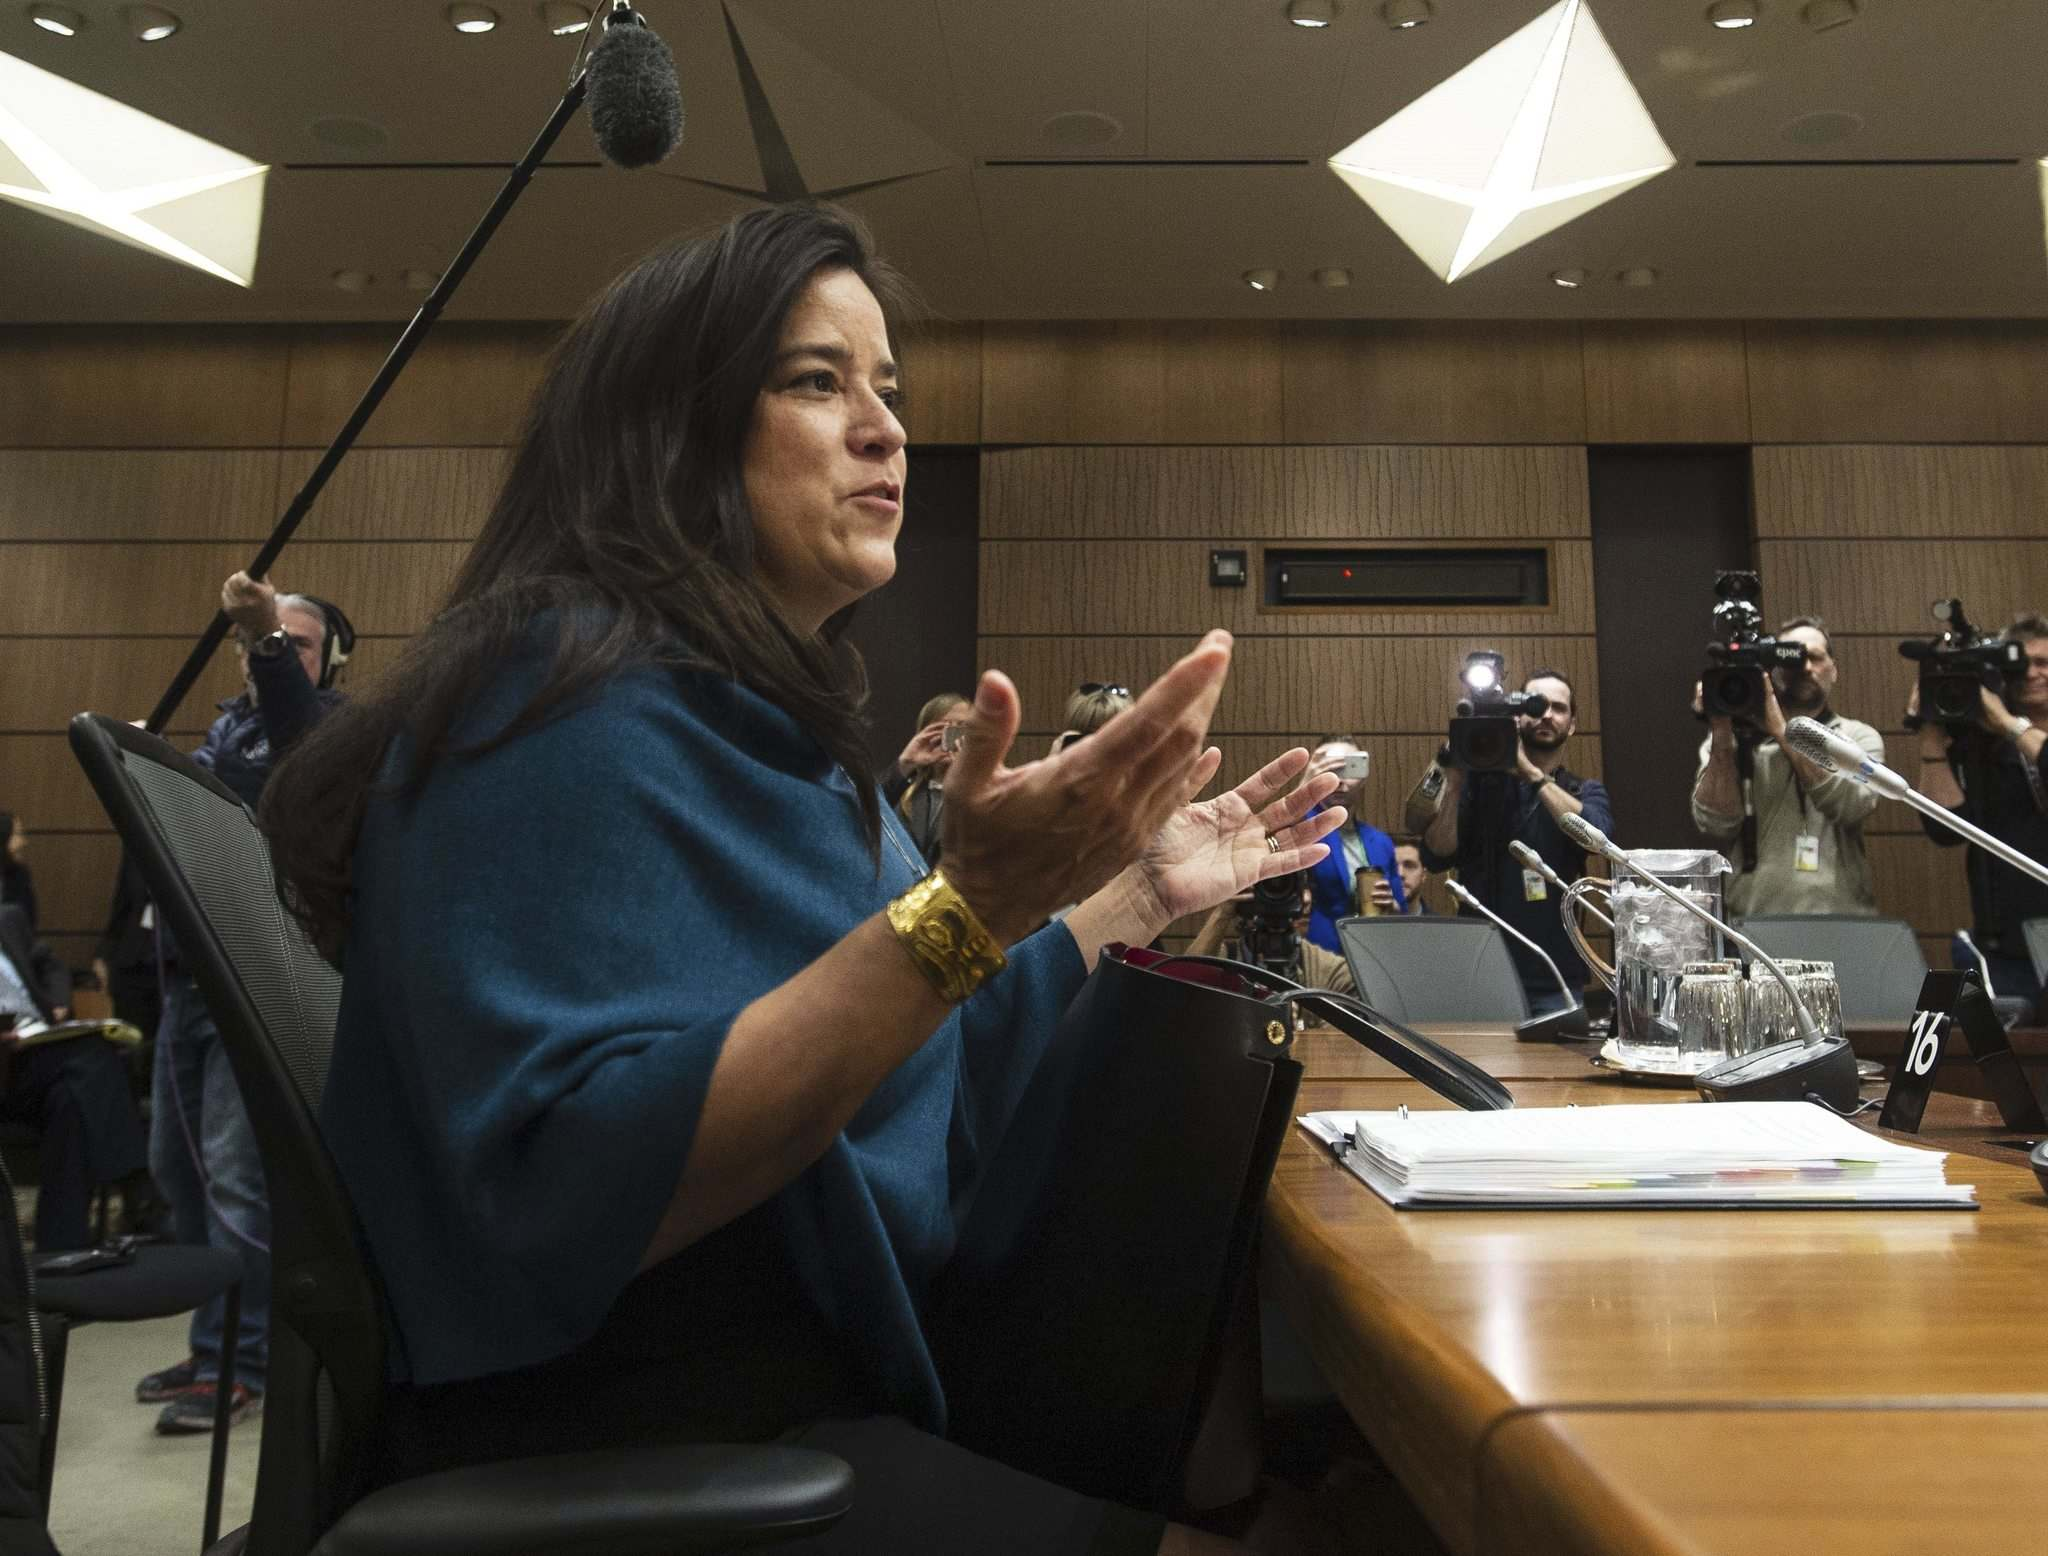 Sean Kilpatrick / The Canadian Press files</p><p>Jody Wilson-Raybould, testifying before the House of Commons justice committee in Ottawa, says she faced 'veiled threats' over the SNC-Lavalin situation.</p>